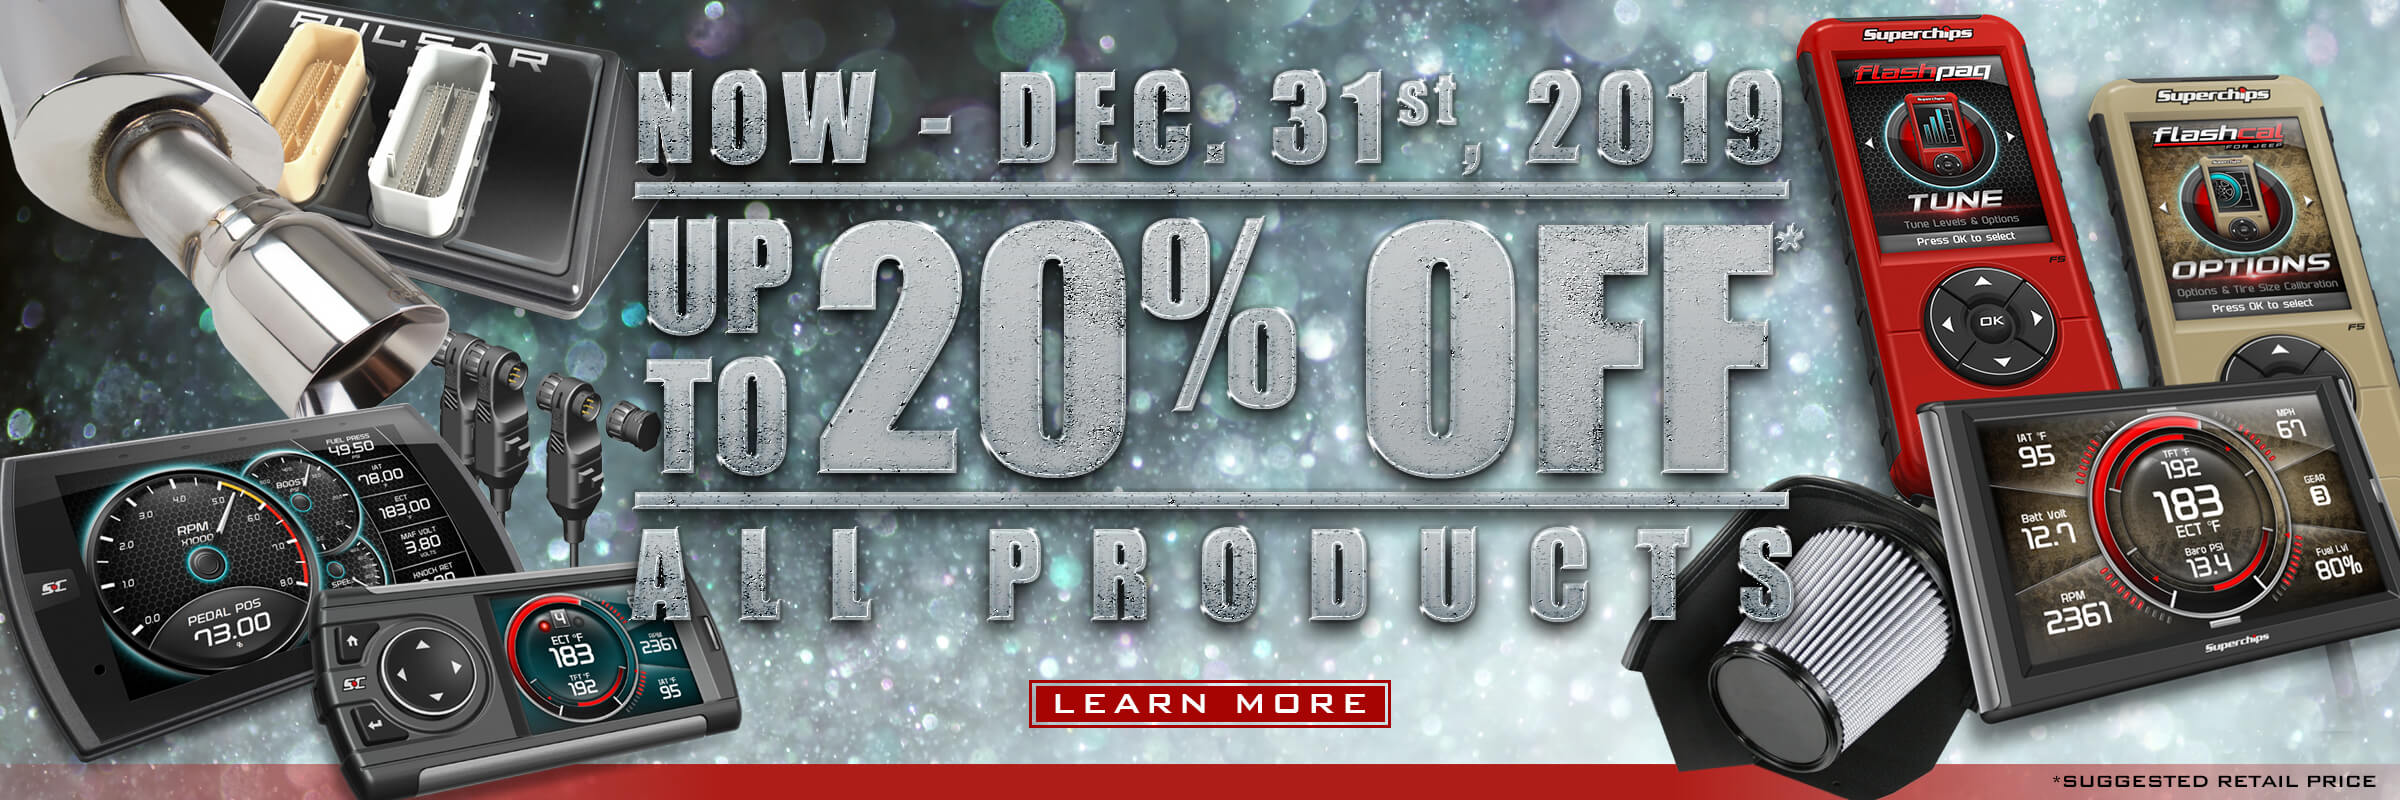 Superchips 2019 Holiday Promo - Save upto 20% off SRP.